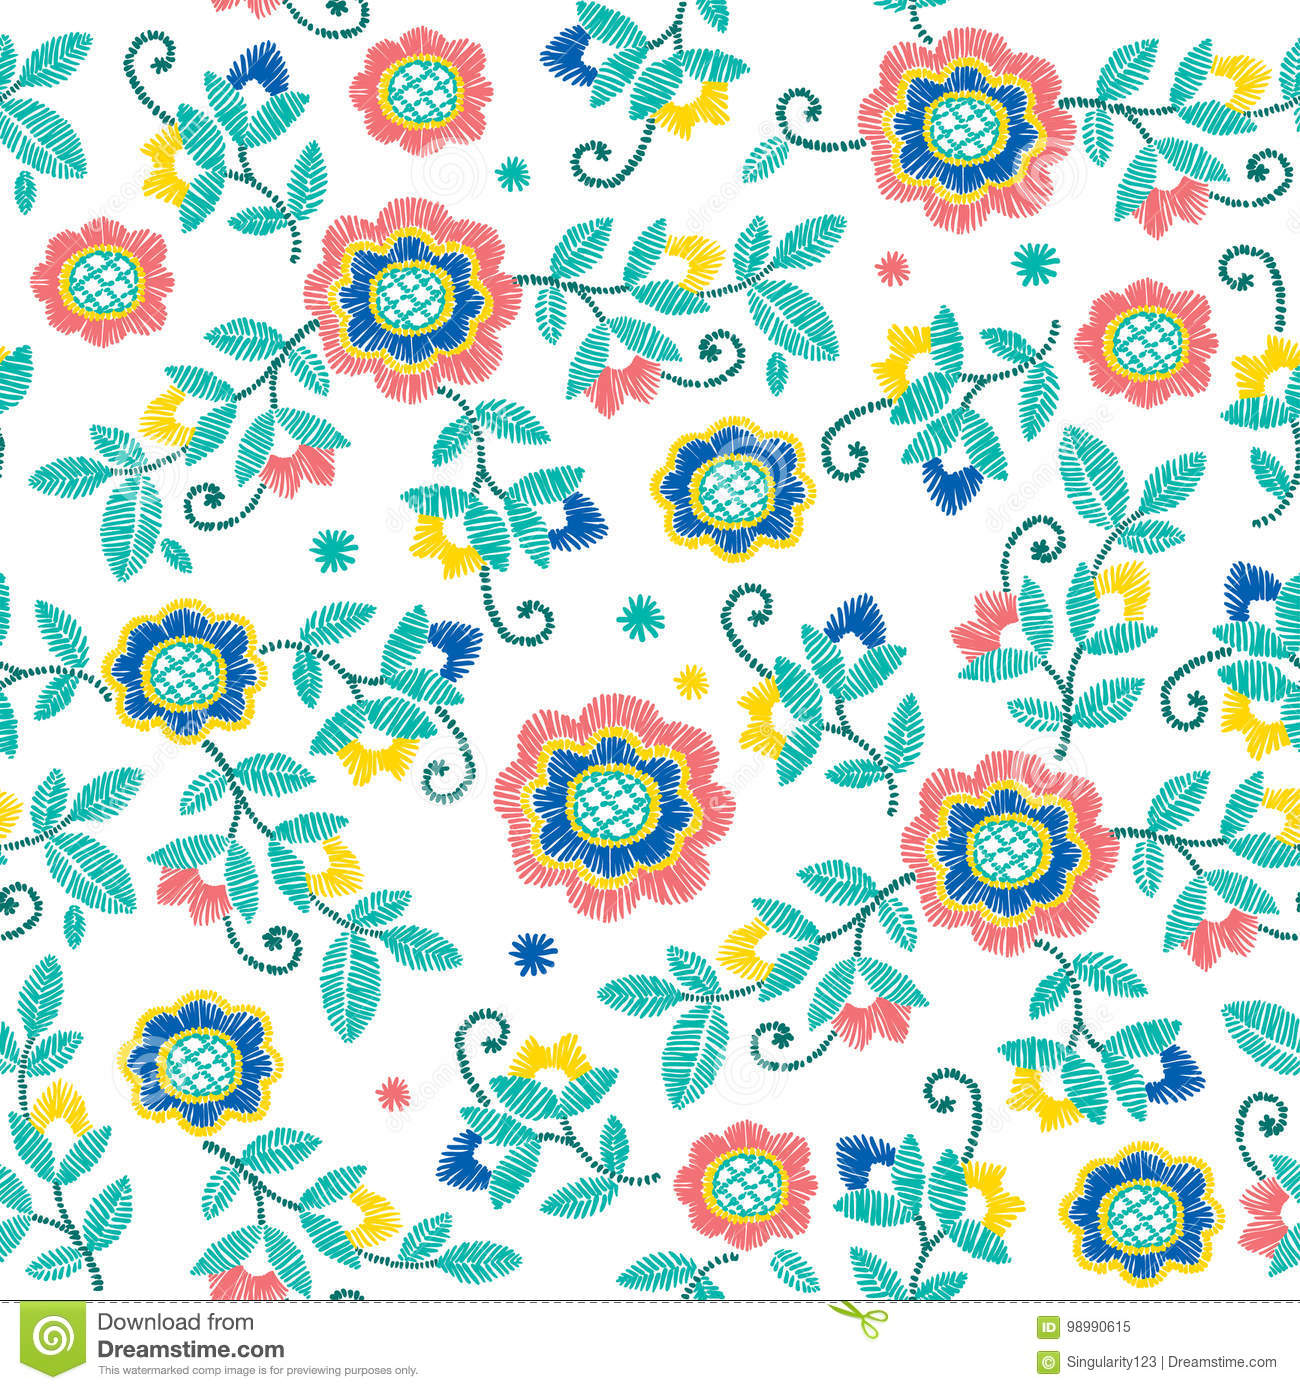 a3069eef504b Vector Seamless Decorative Floral Embroidery Pattern, Ornament For ...